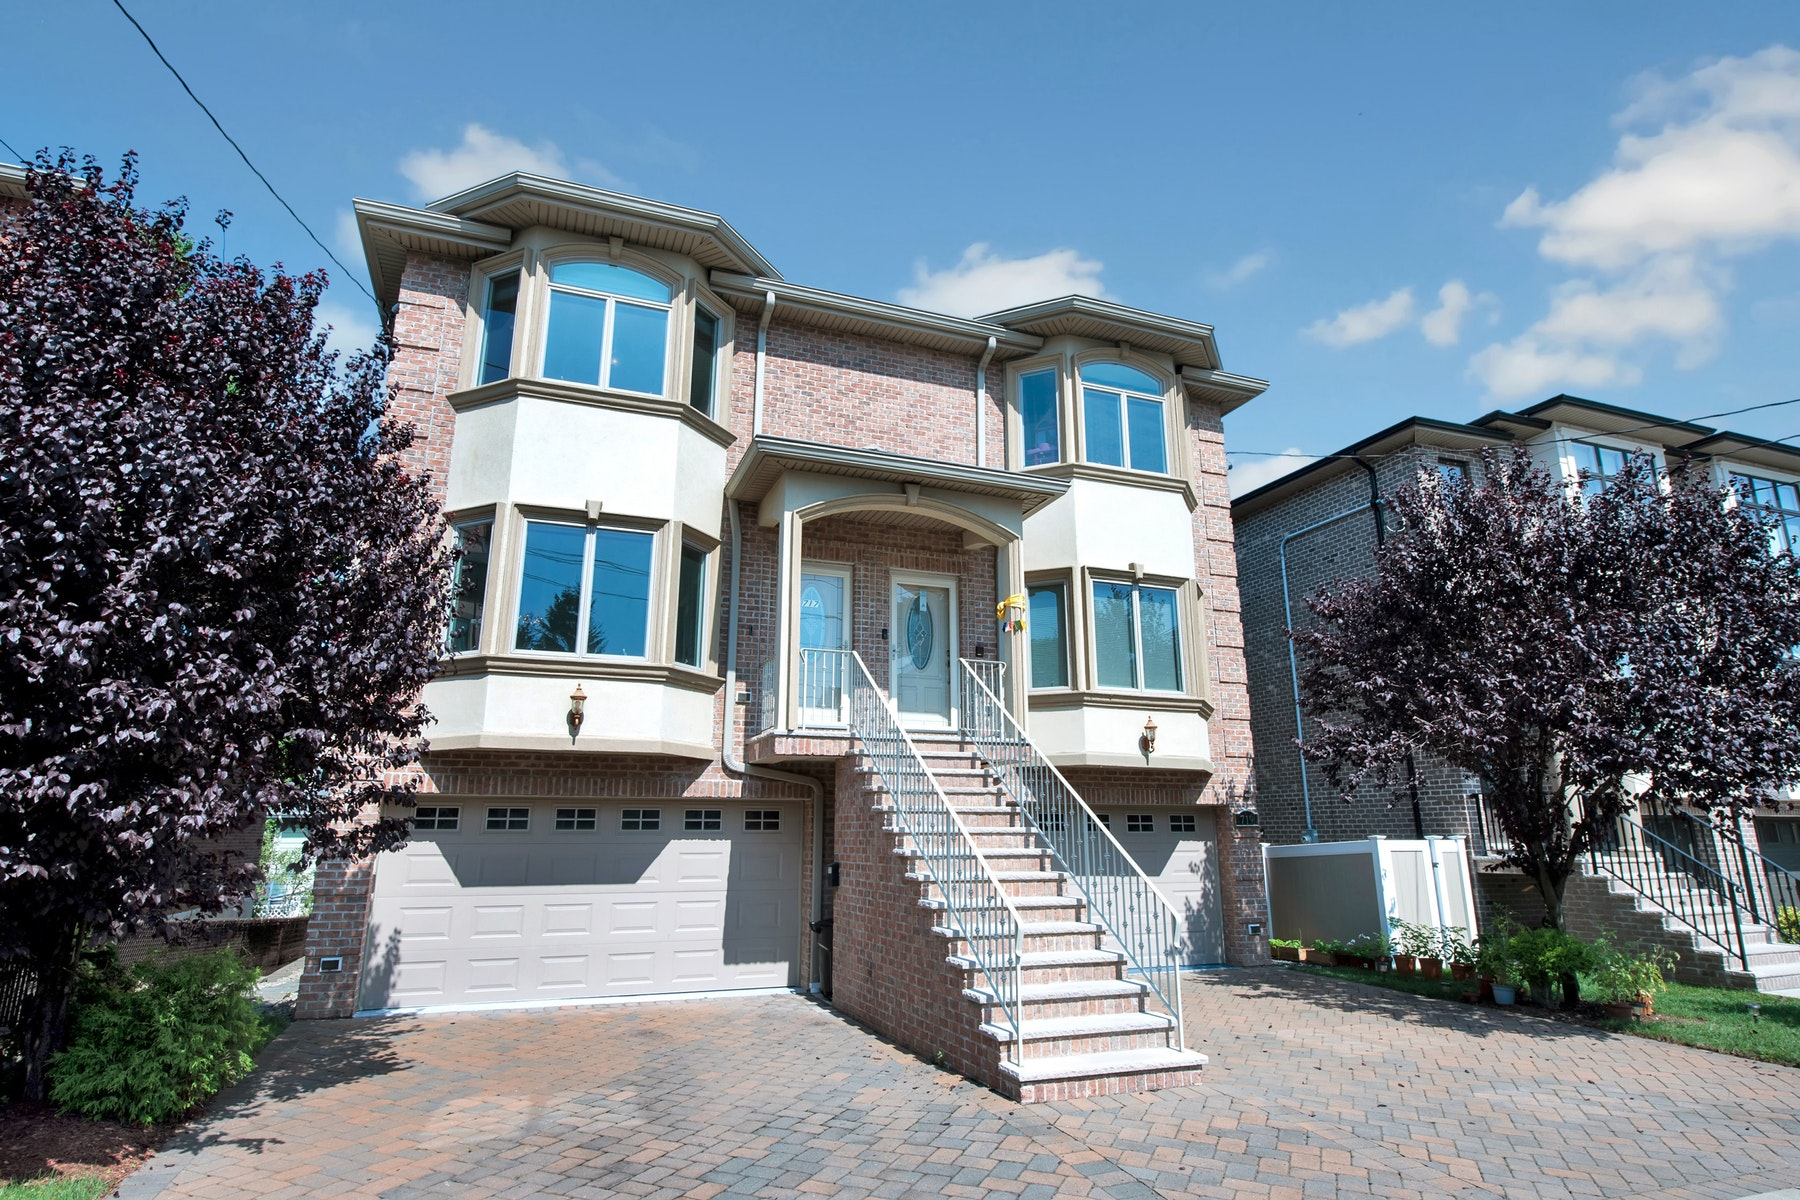 Single Family Homes for Sale at Rare Opportunity! 717 Grove Avenue, Cliffside Park, New Jersey 07010 United States